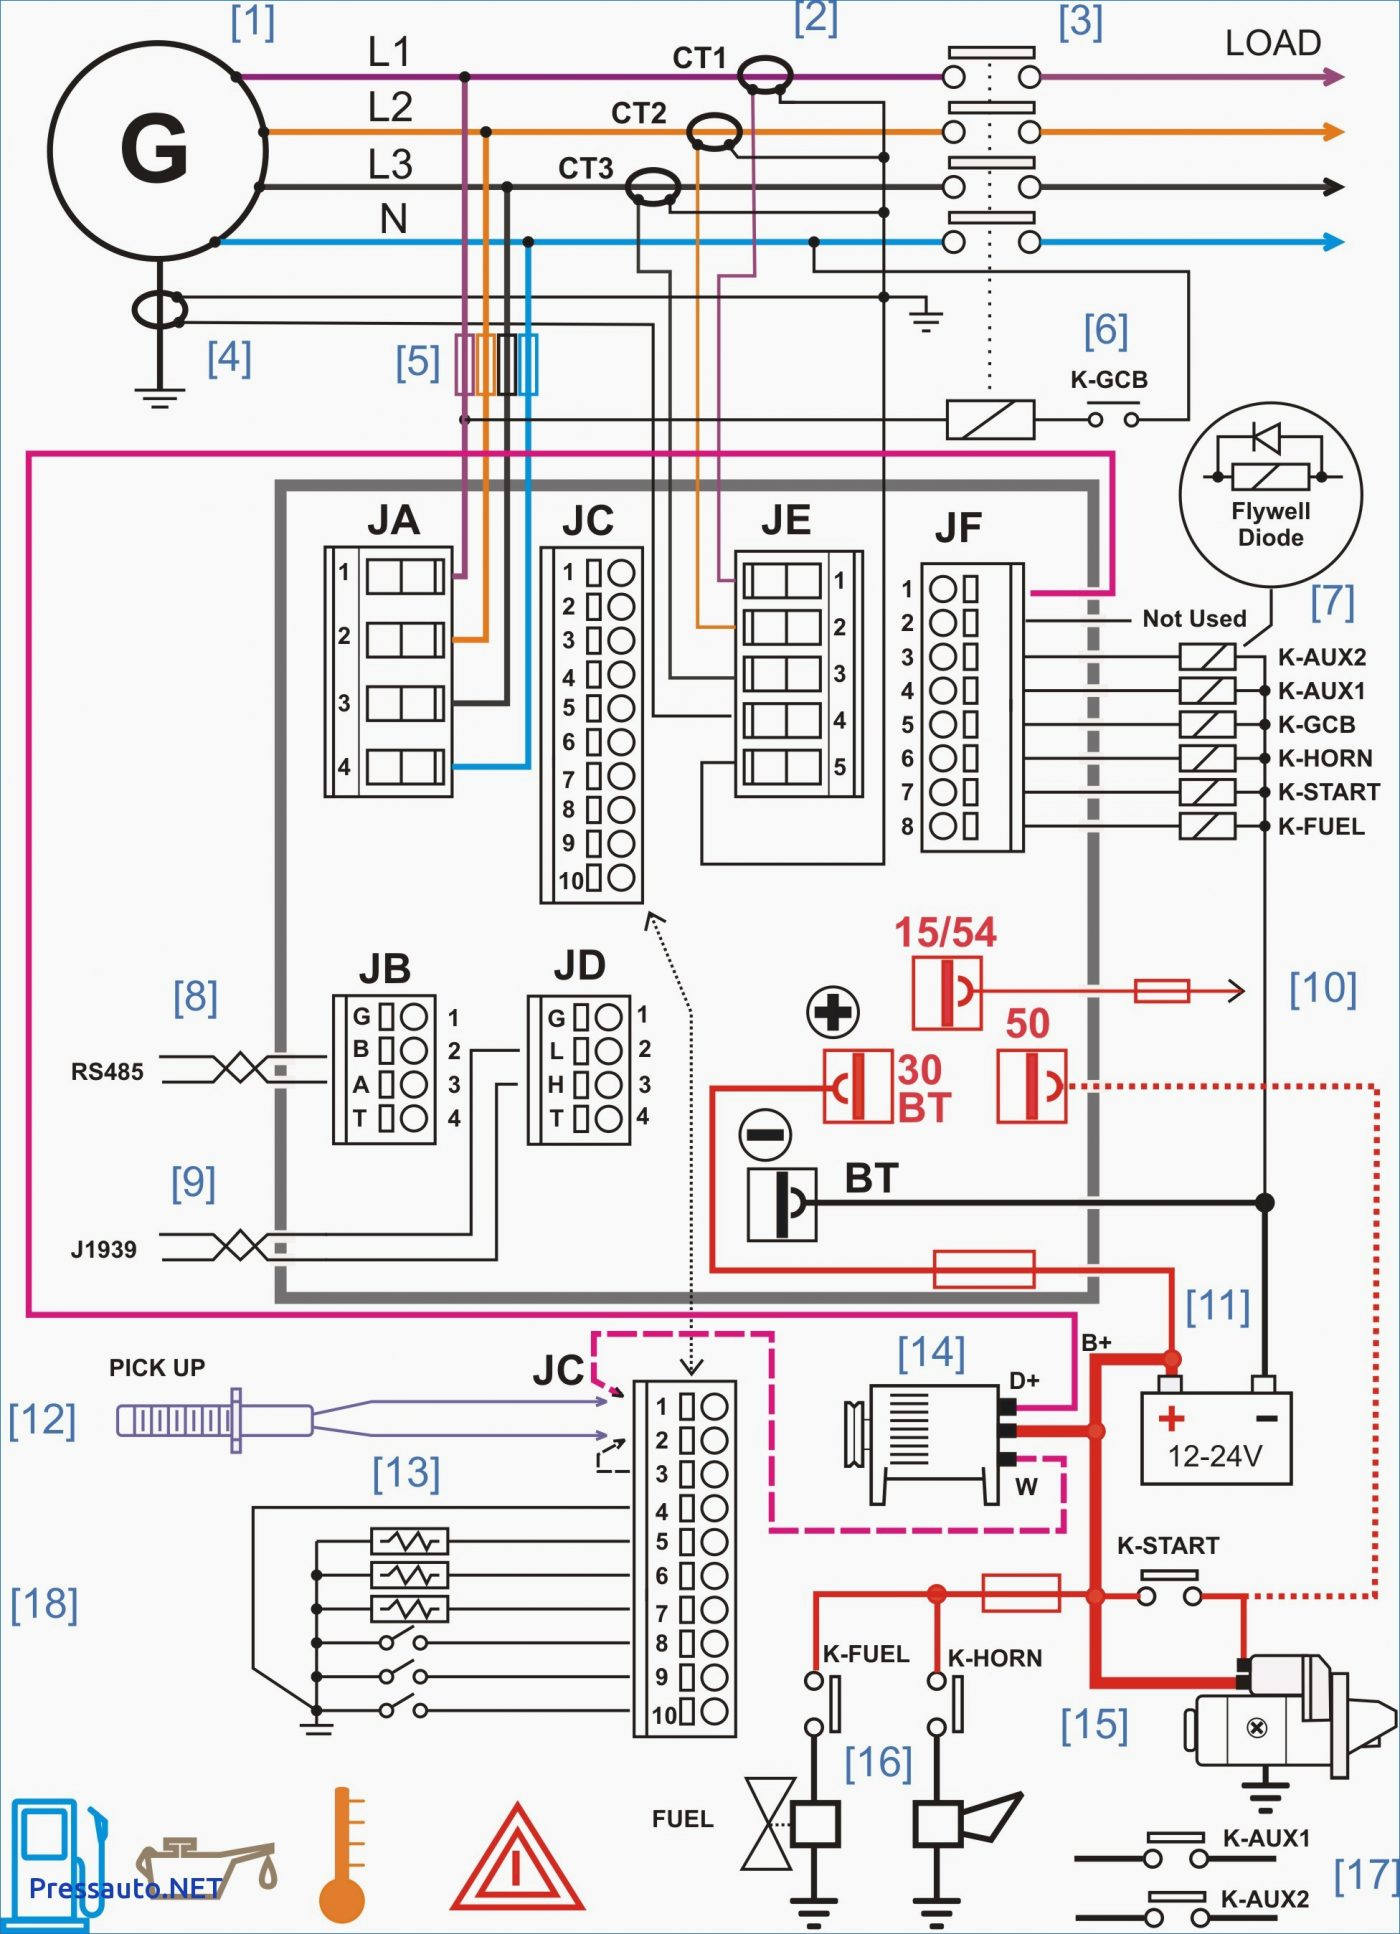 thermospa wiring diagram Download-Thermospa Wiring Diagram Luxury Sta Rite Pump Wiring Diagram Pool Ht T Submersible High Wires 1-h